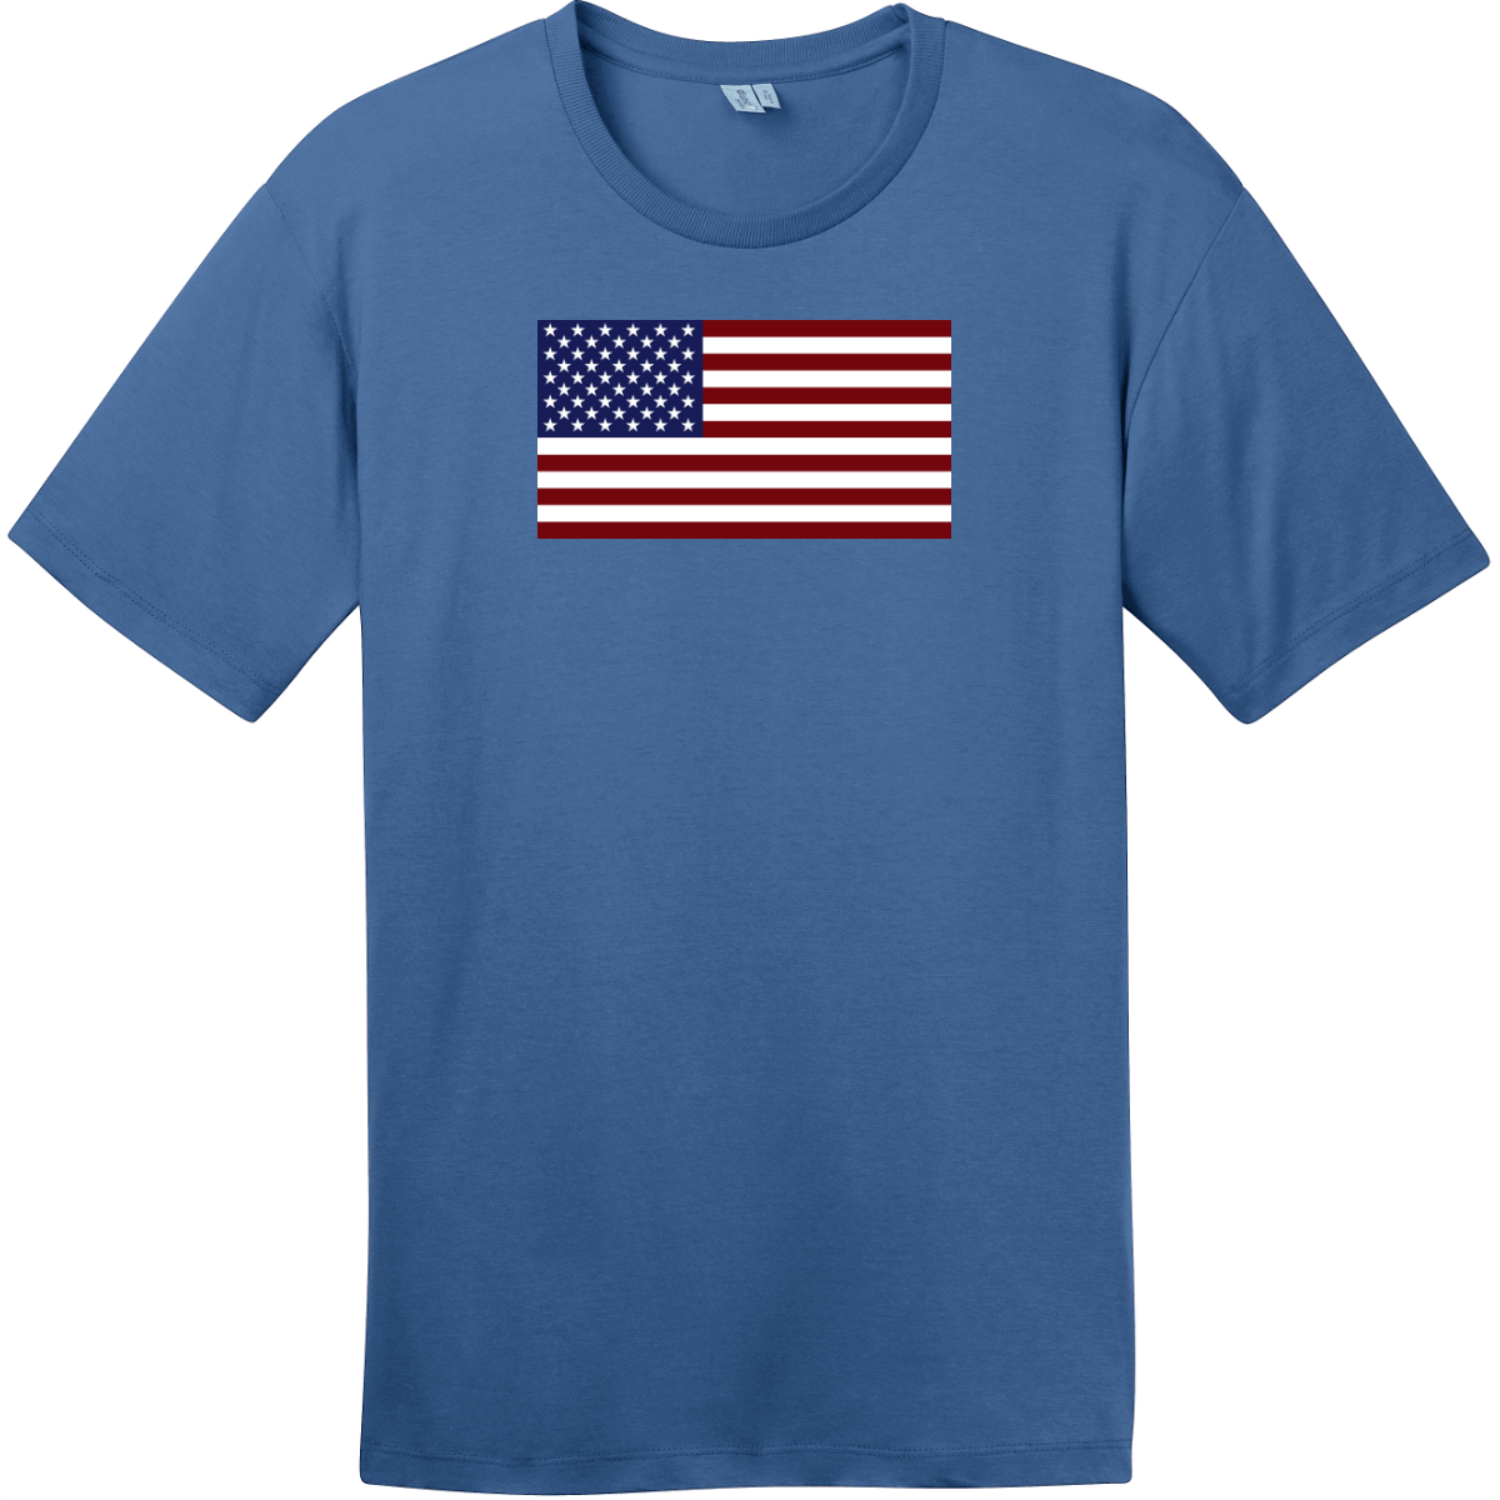 United States of America Flag T-Shirt Maritime Blue District Perfect Weight Tee DT104